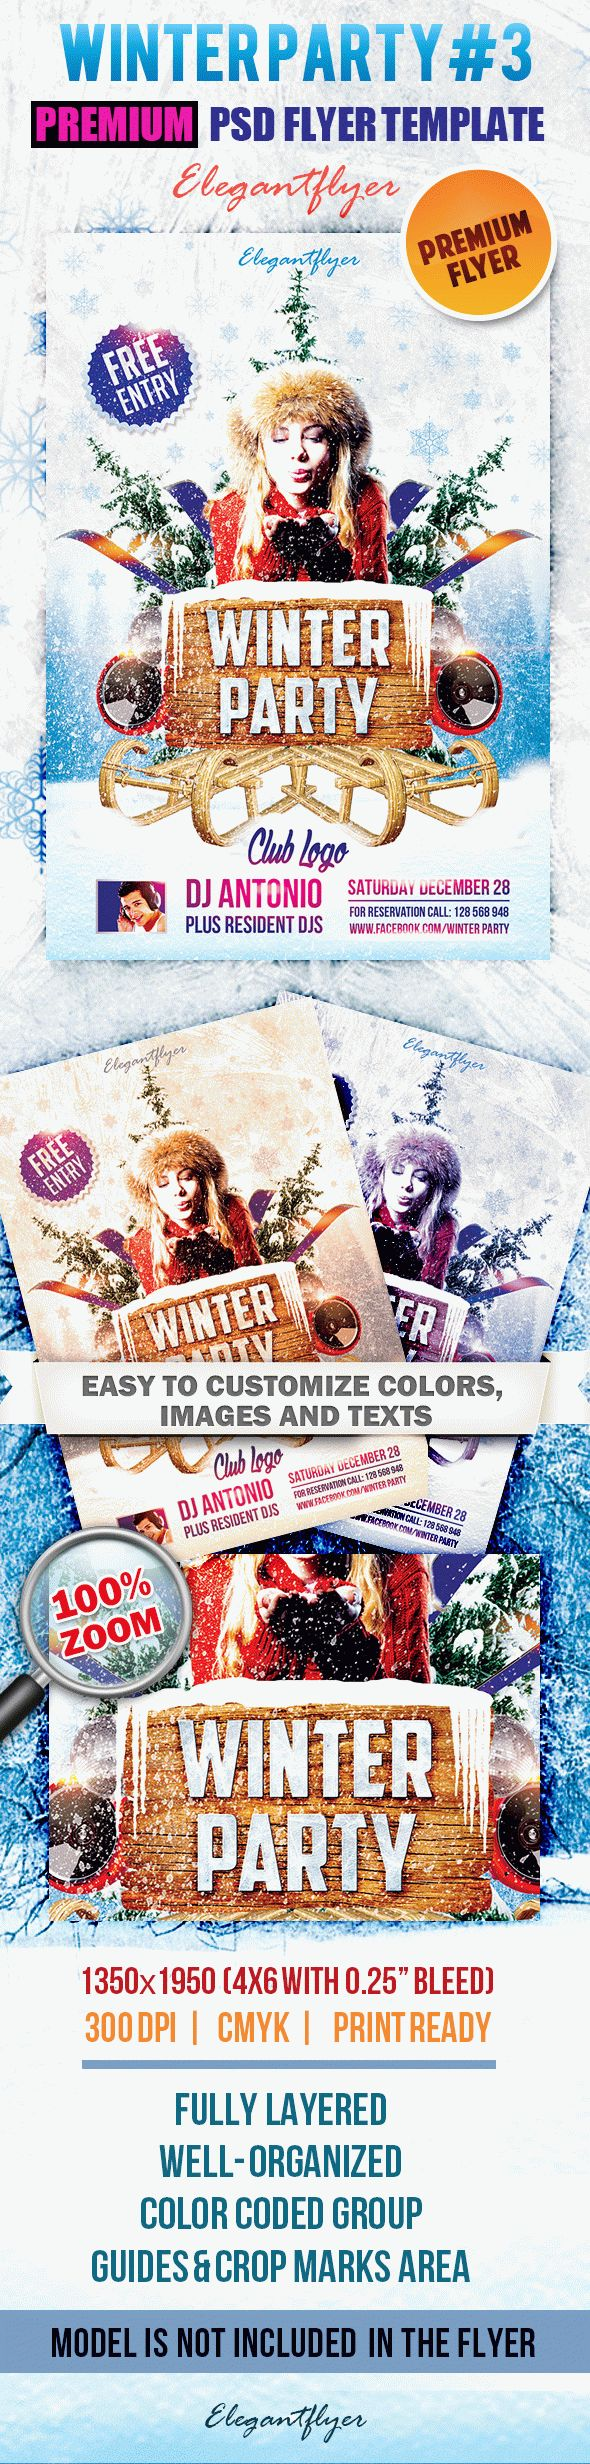 Winter Party #3 – Premium Club flyer PSD Template